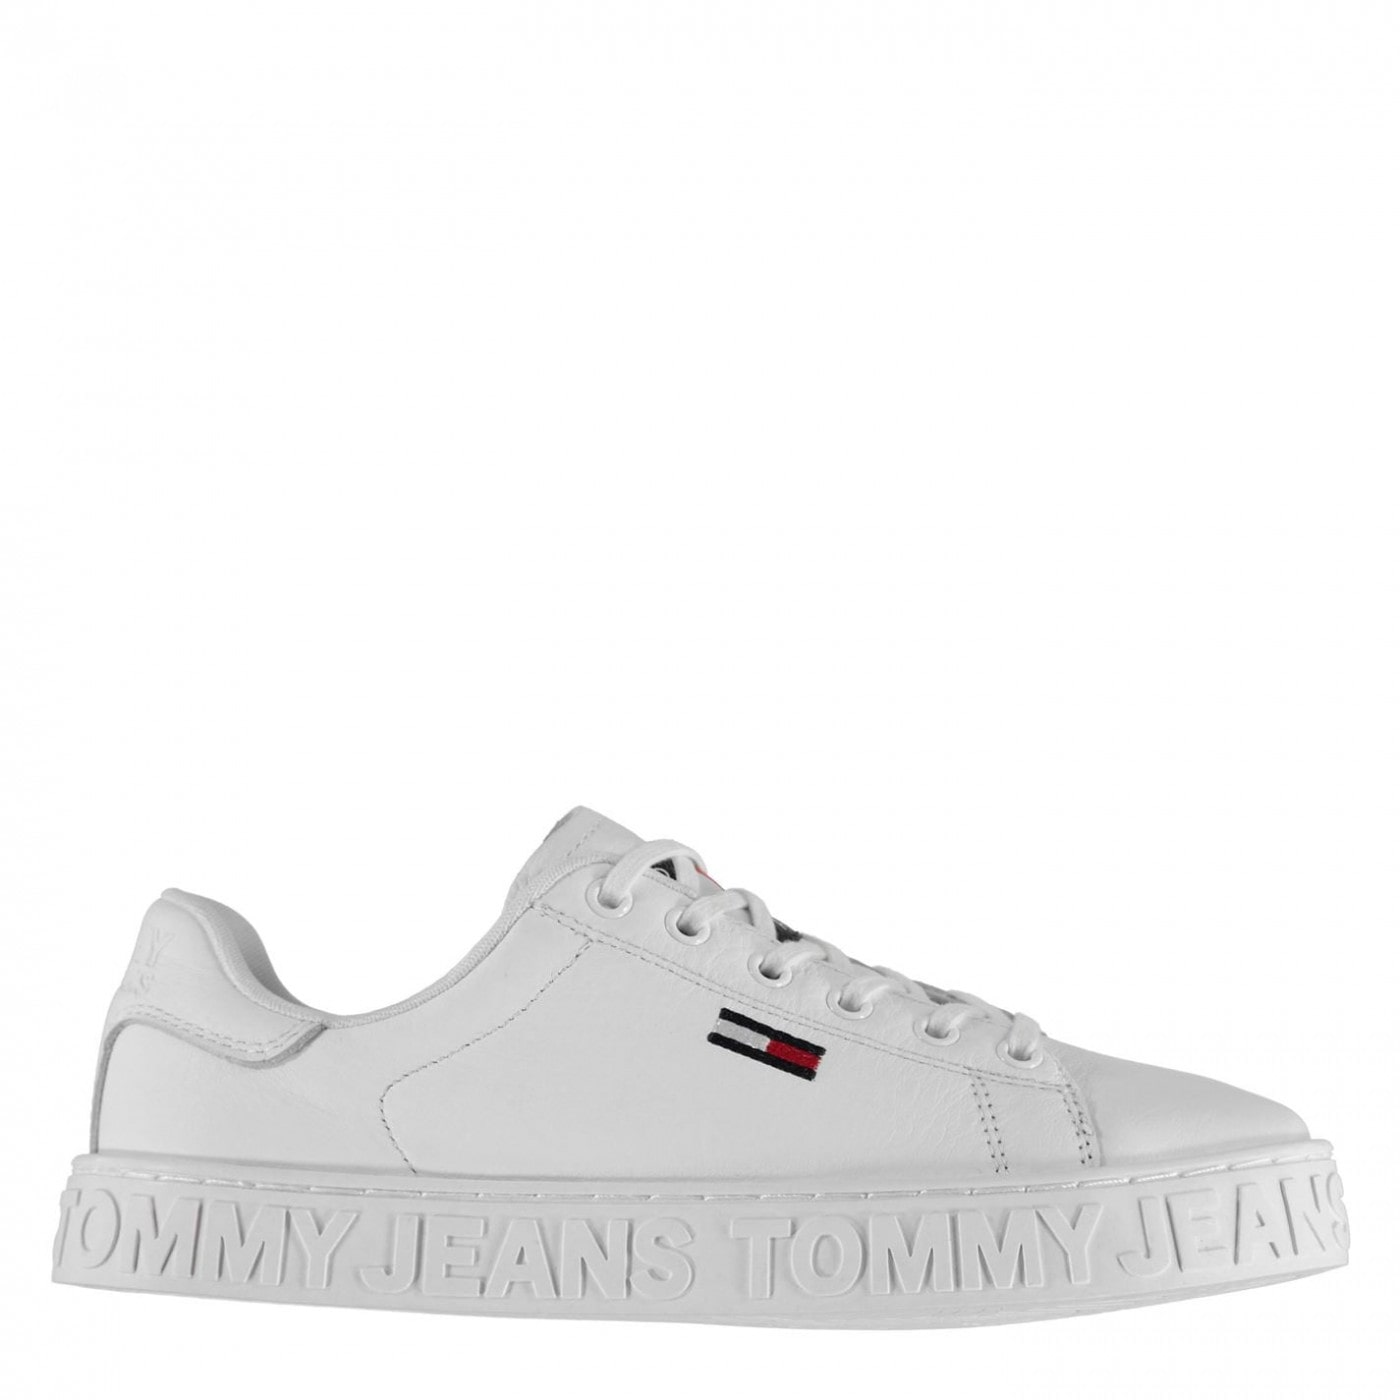 Tommy Jeans Trainers